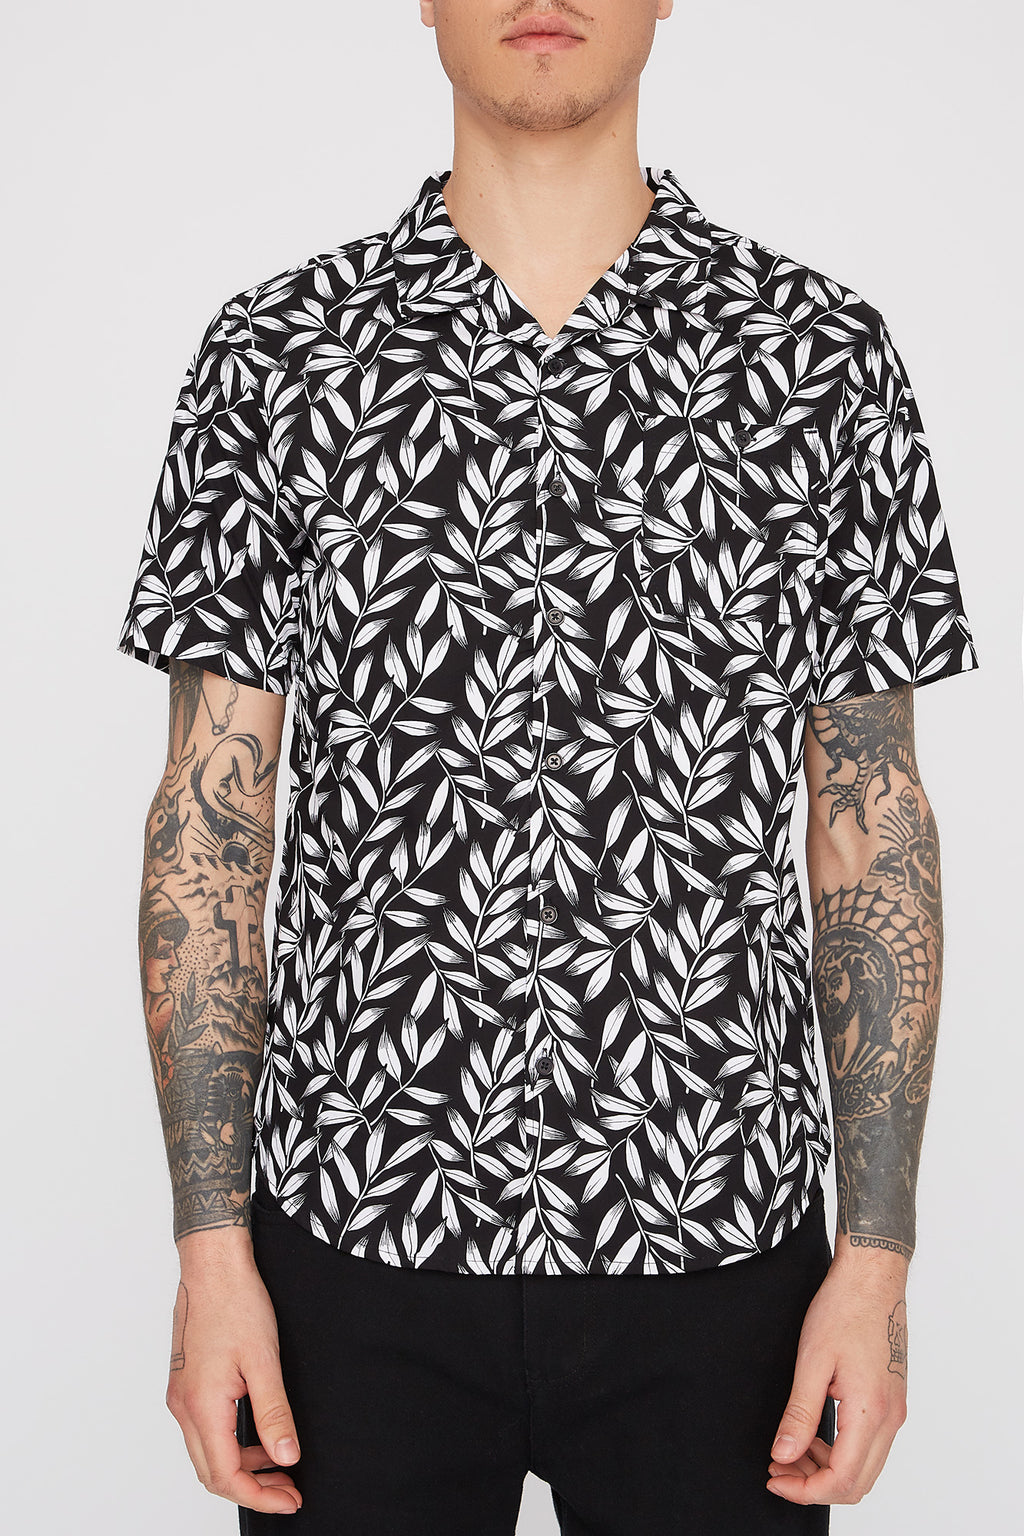 West49 Mens Black Floral Button Up Shirt